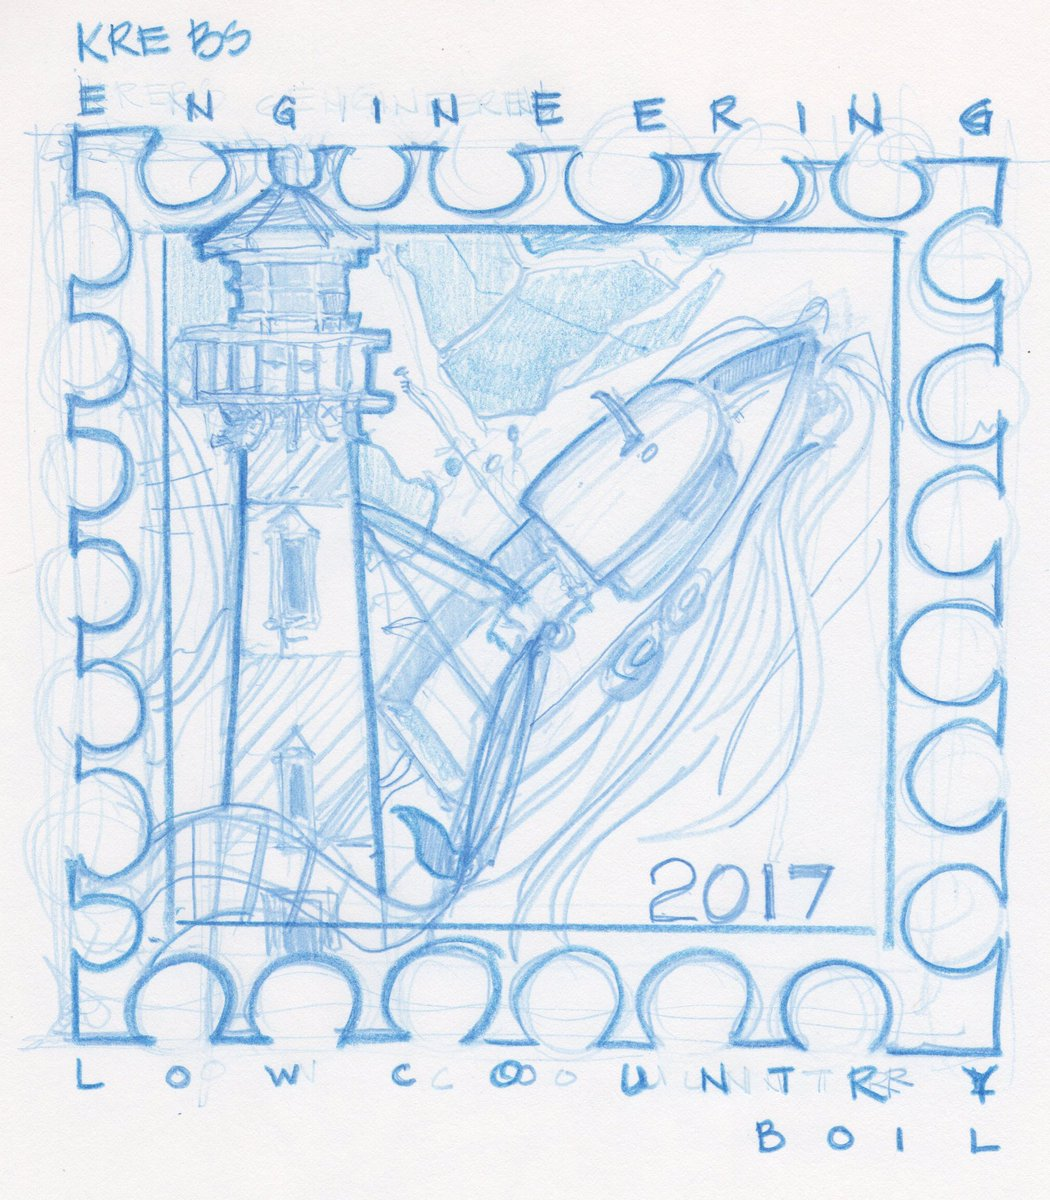 #lowcountry concept #stamp #sketch #charleston #shrimpboat #drawing #illustration #doodlebags #art<br>http://pic.twitter.com/hw07Sz2kBC